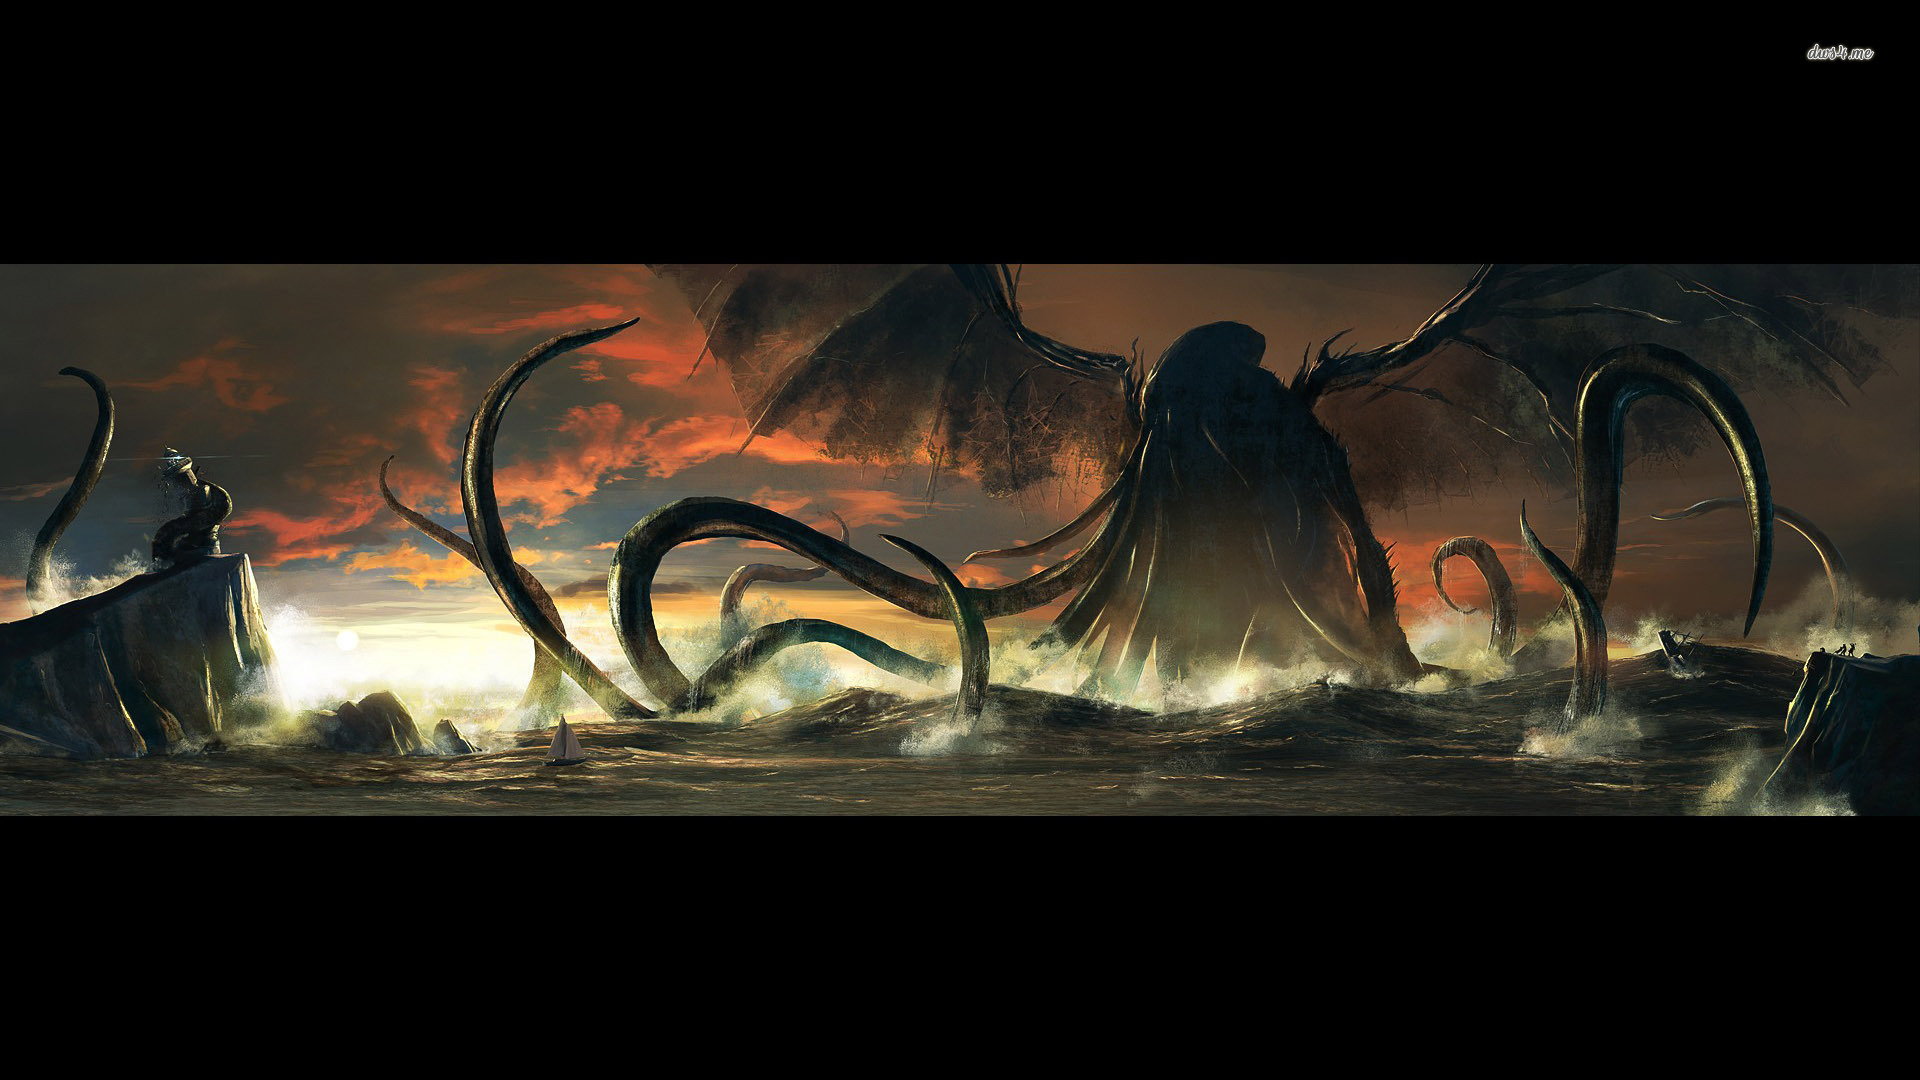 18782-cthulhu-in-the-ocean-1920x1080-fantasy-wallpaper